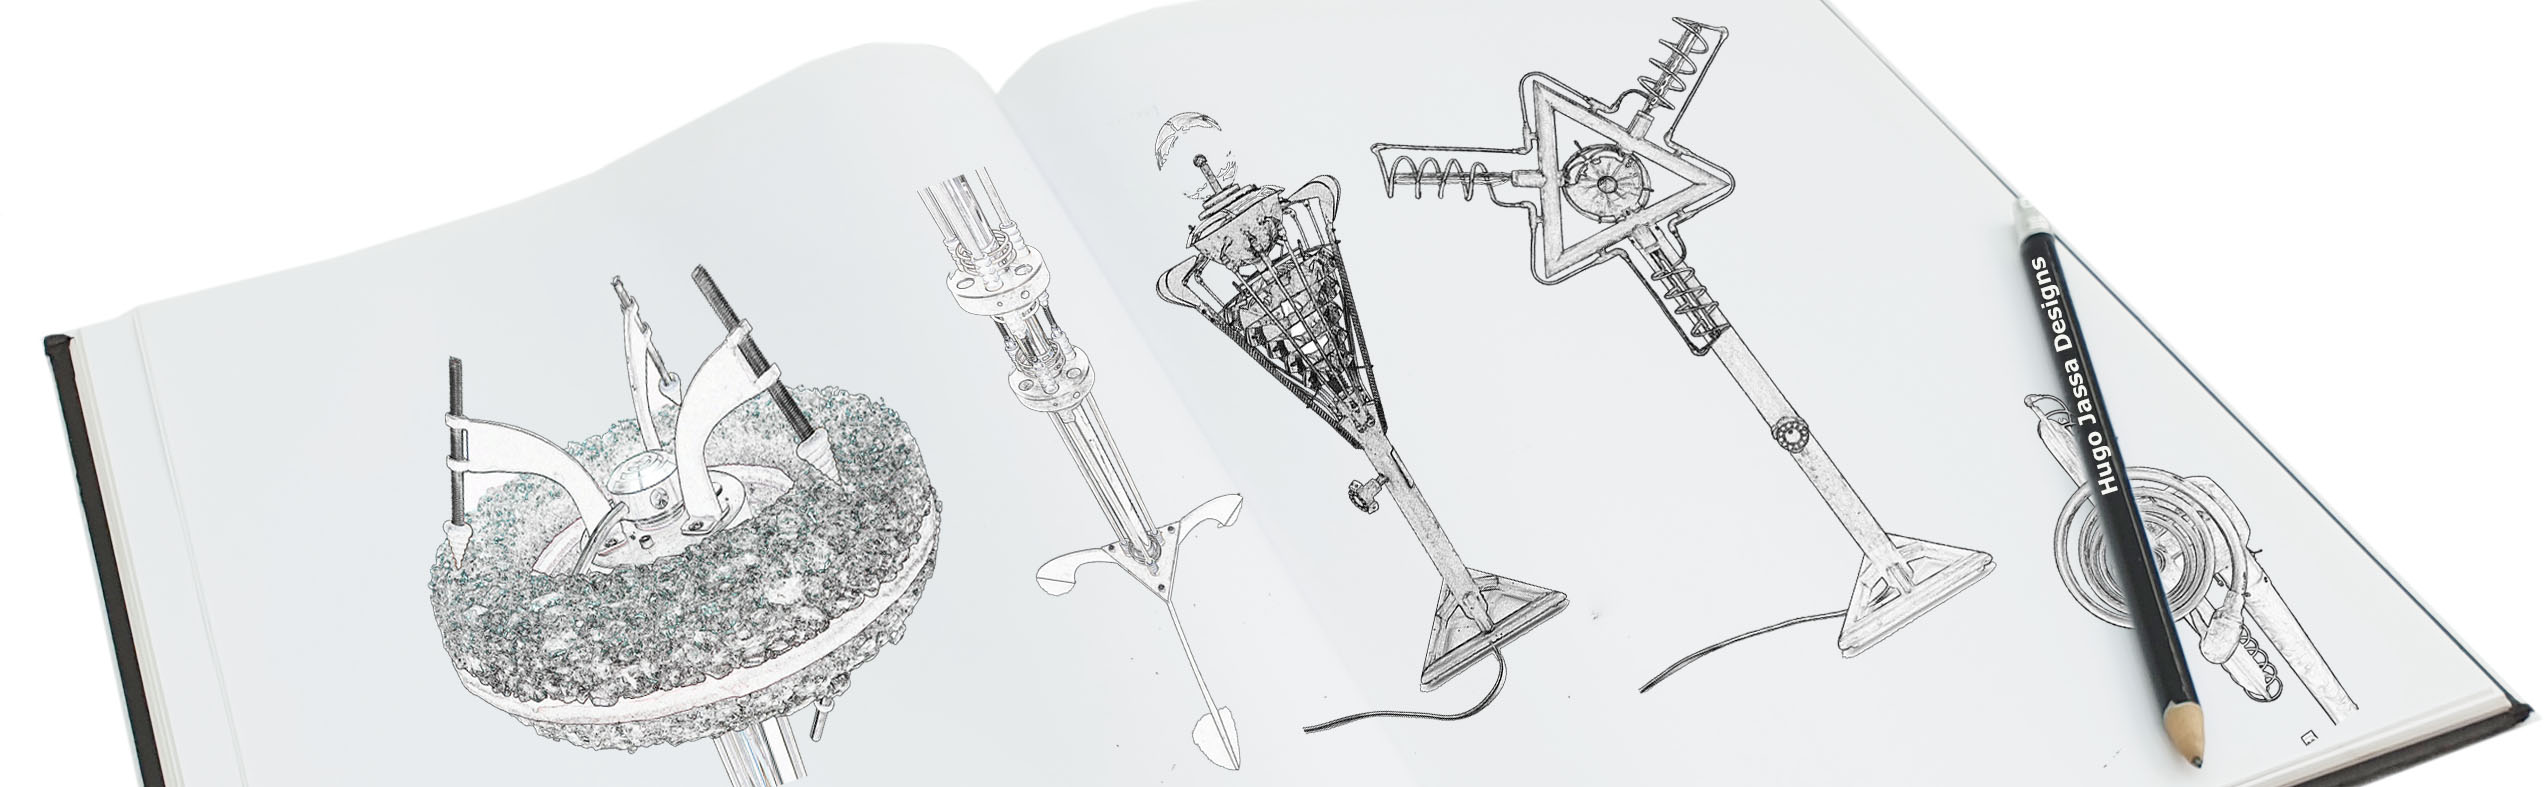 Drawing book with Hugo's designs